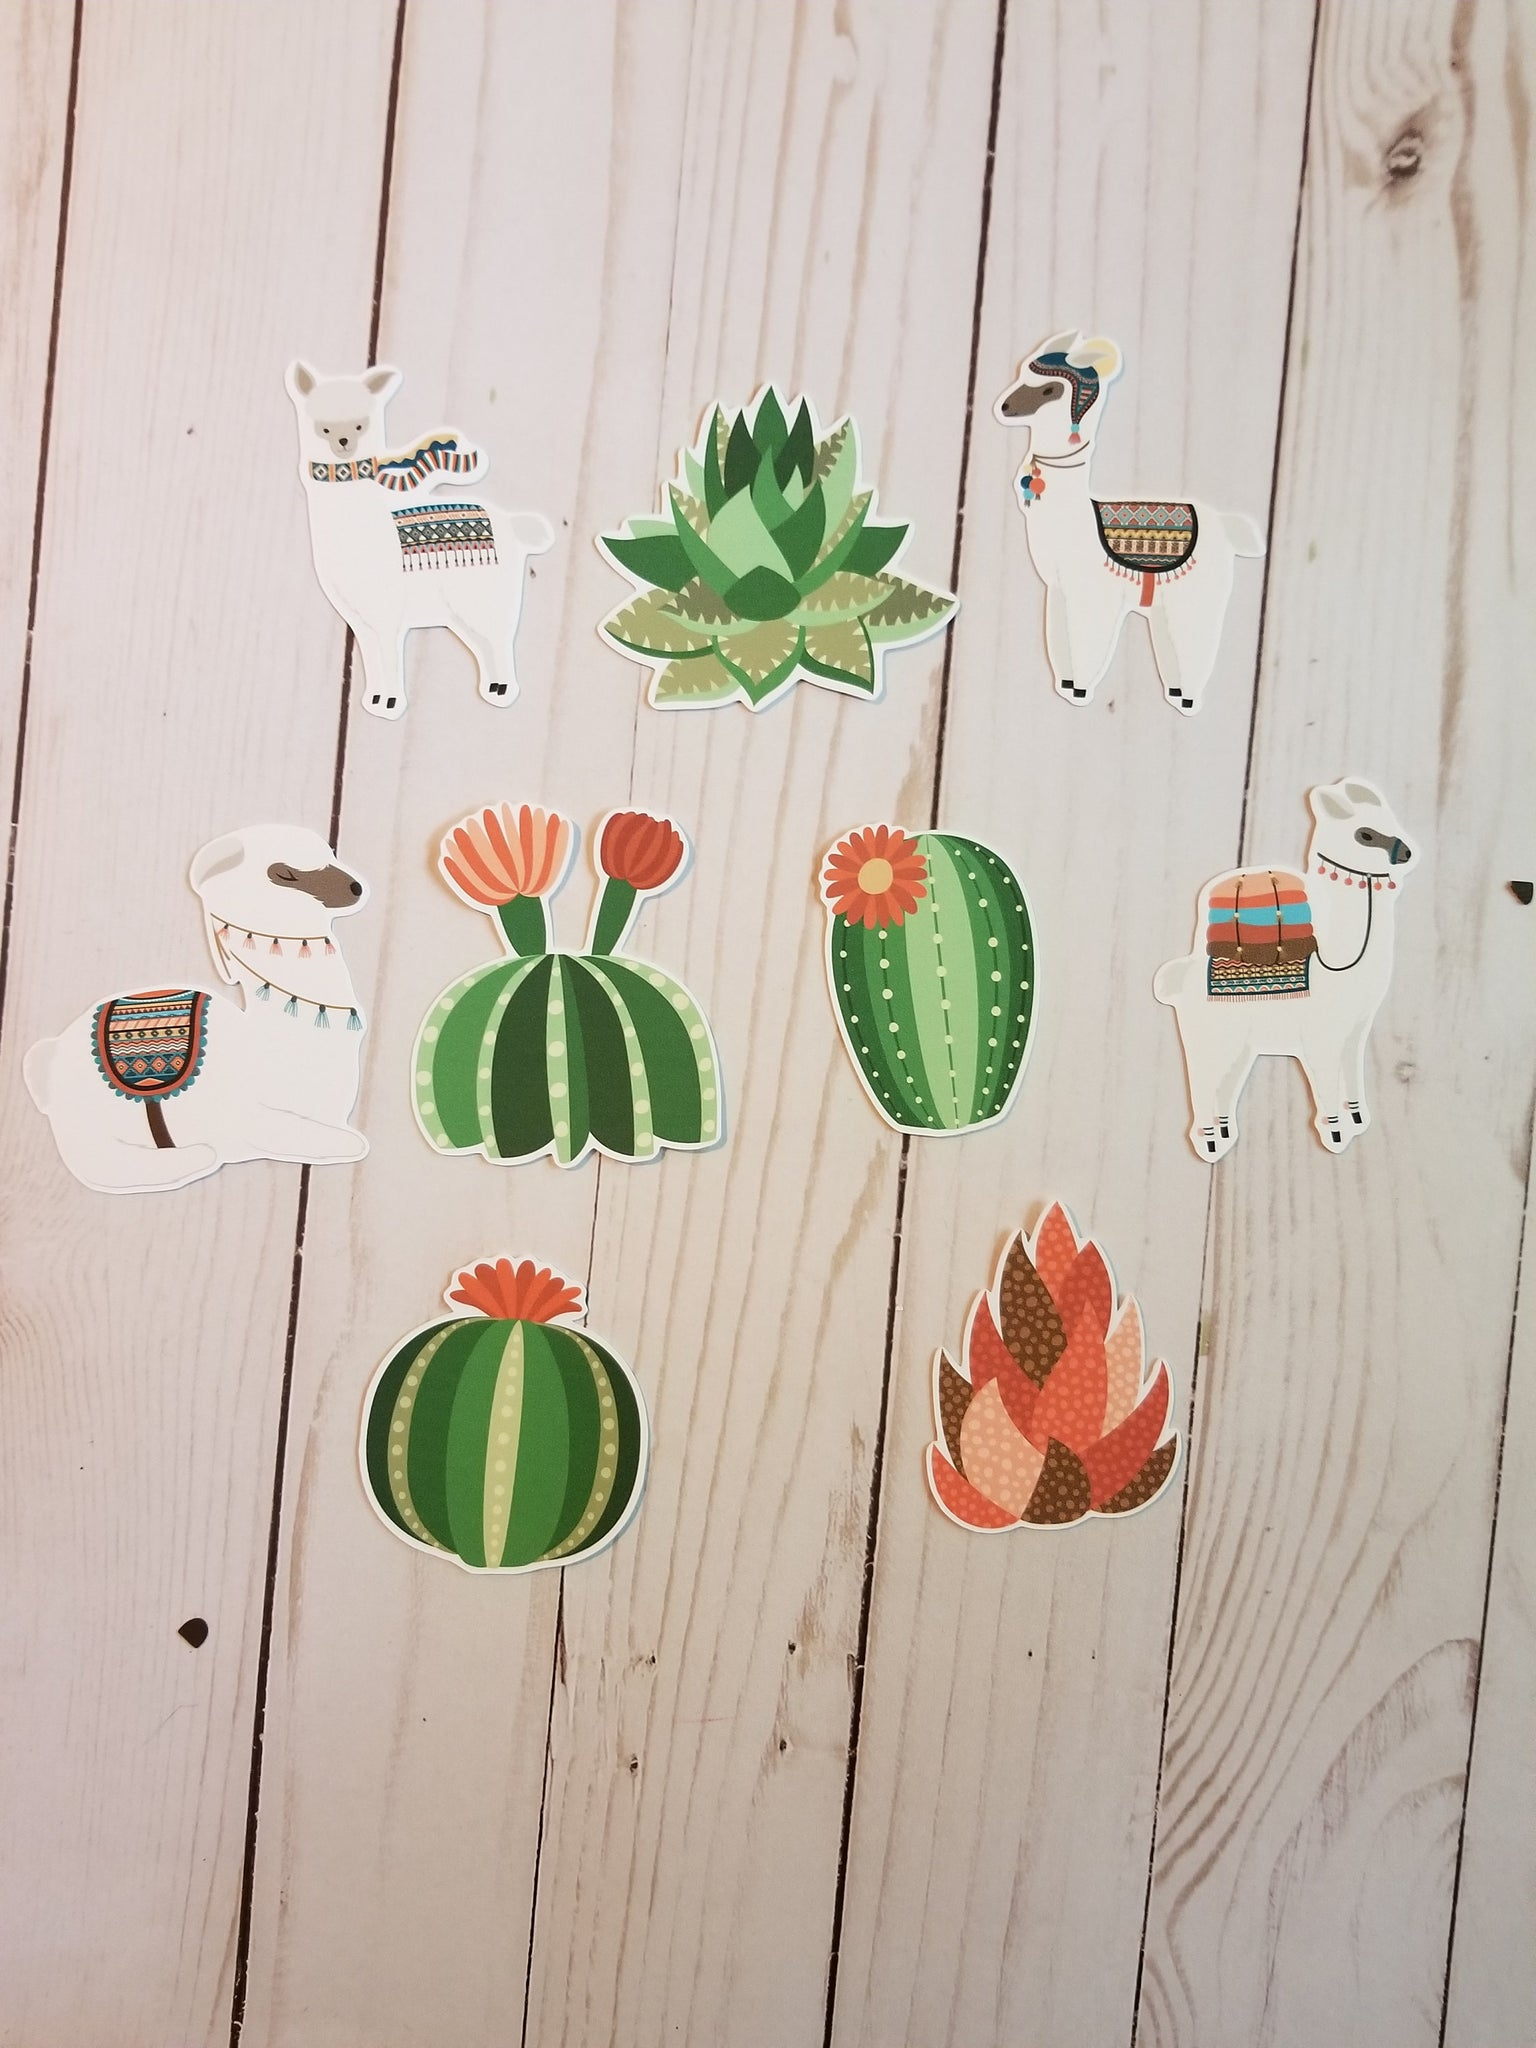 Llama and Cactus Die Cuts / Llama Die Cuts / Cactus Die Cuts /  Die Cuts / Die Cut Set